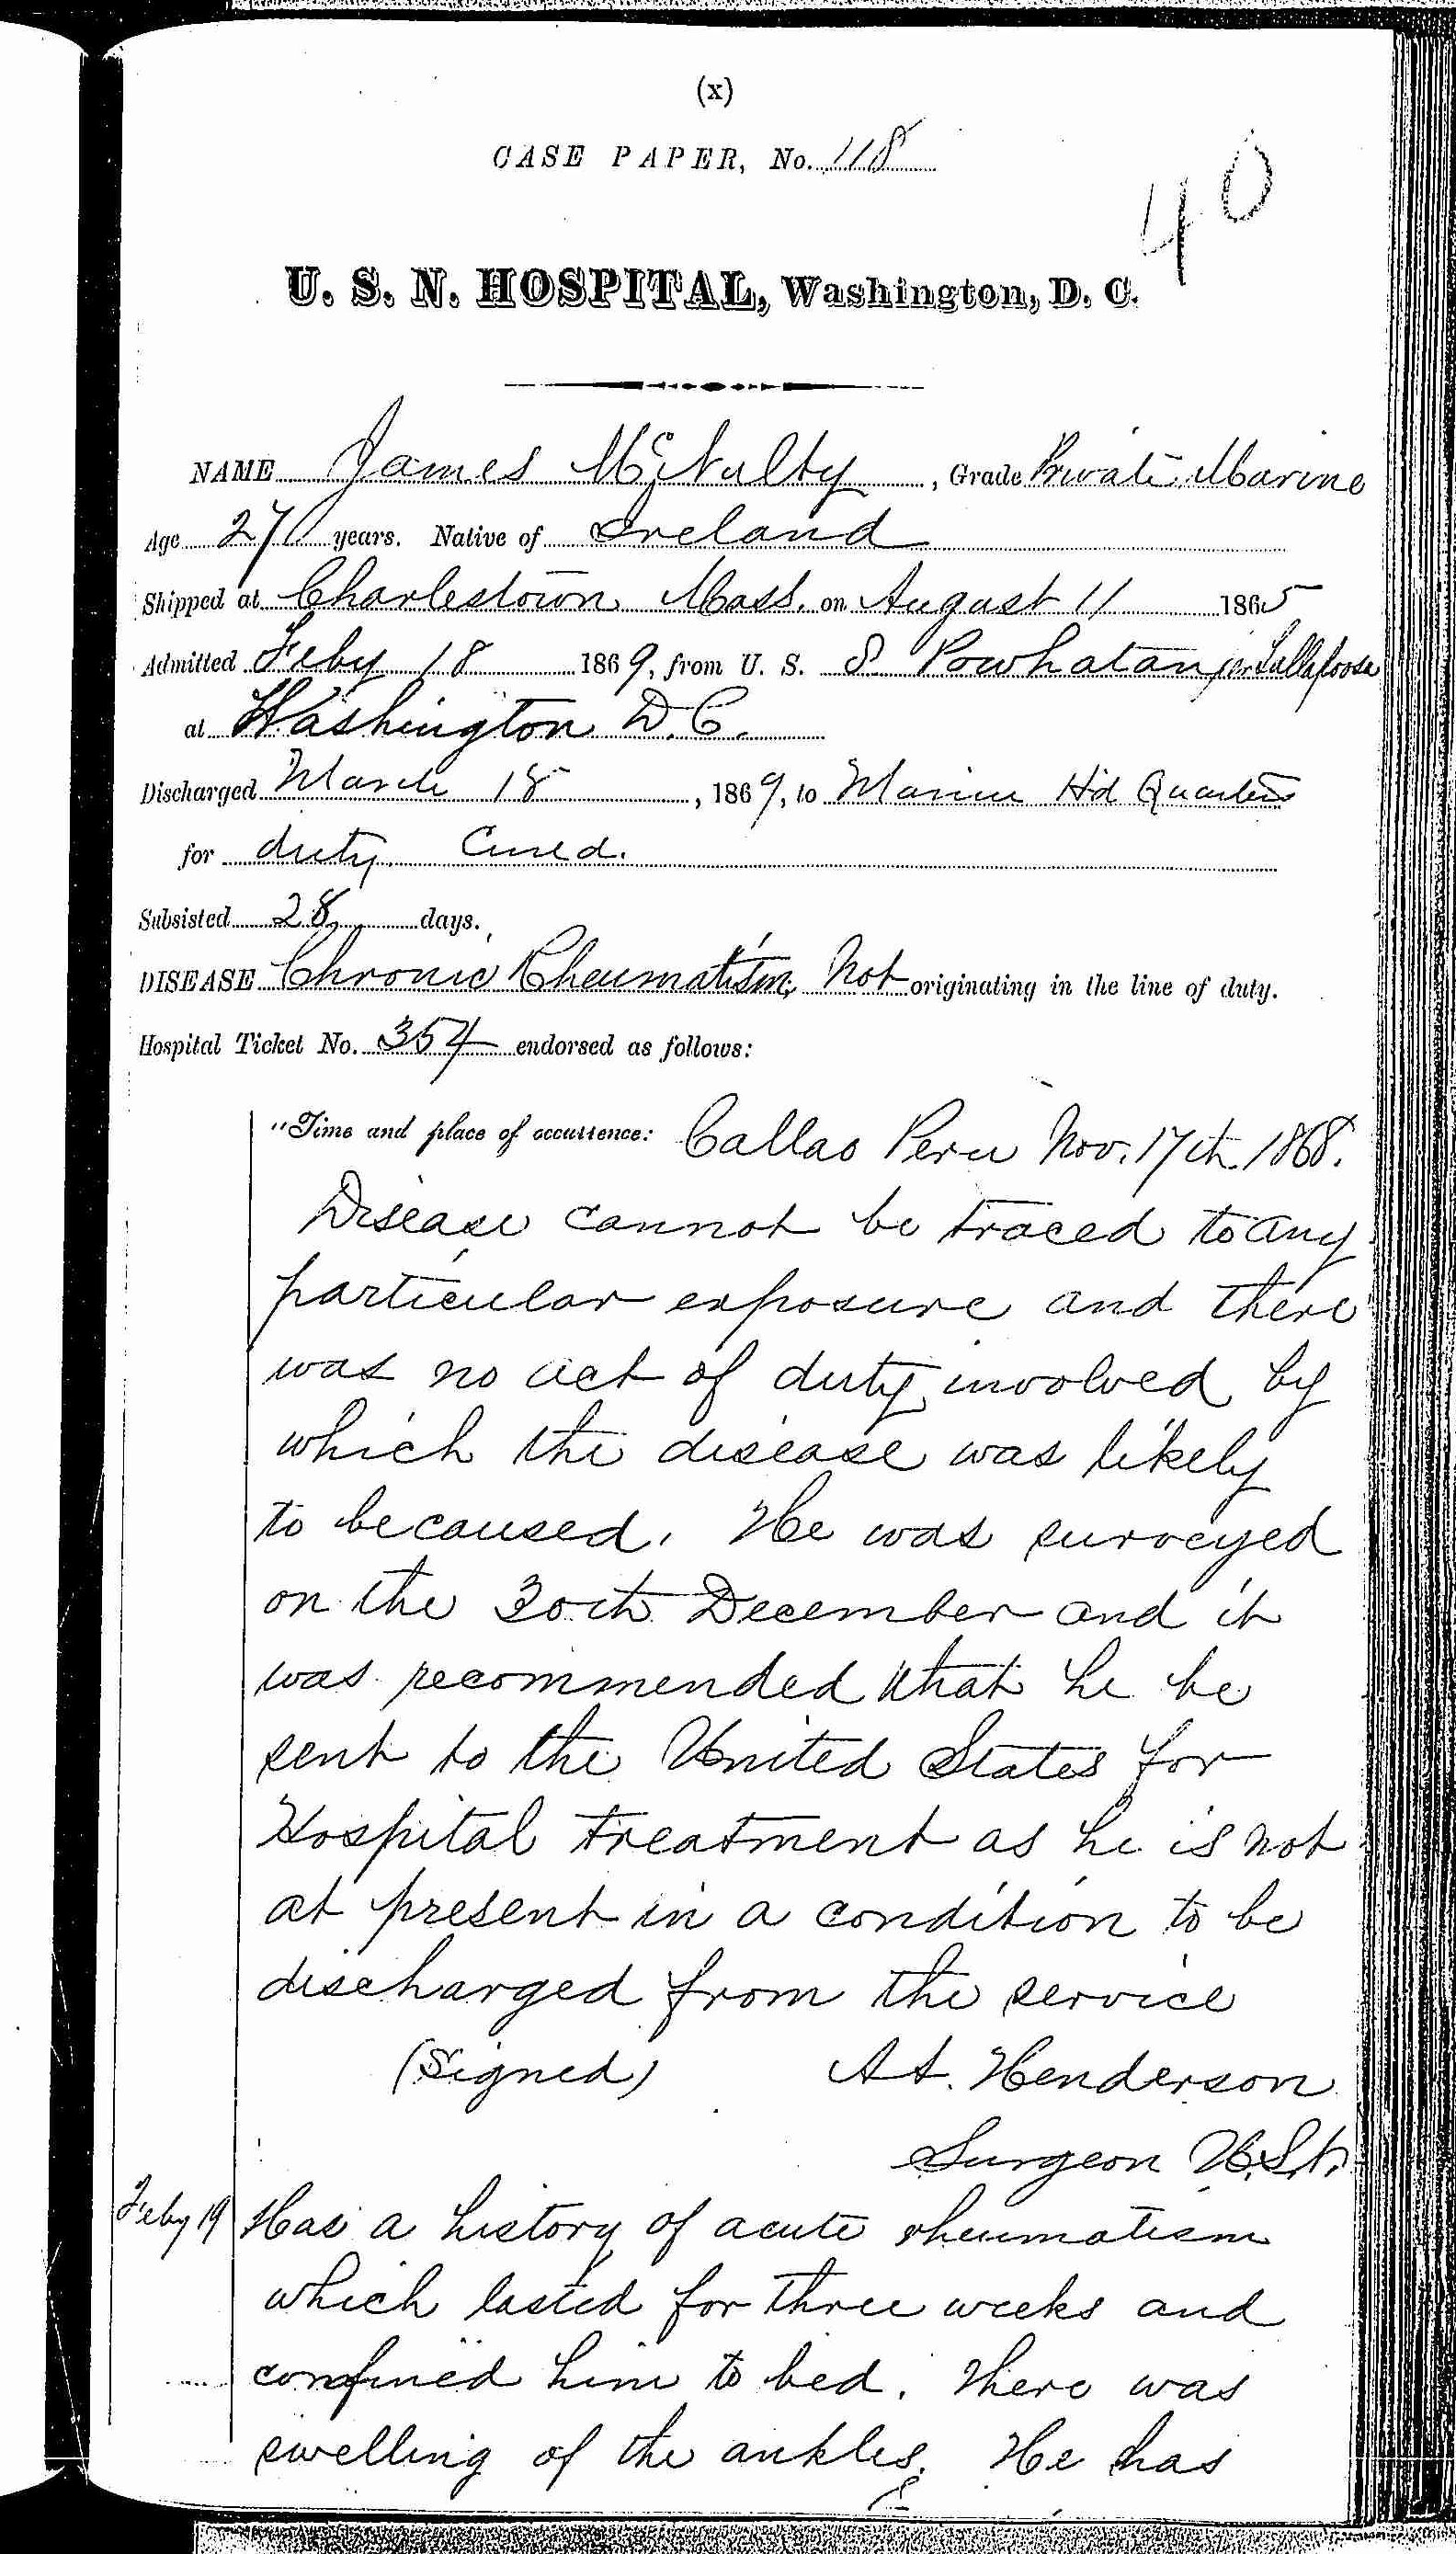 Entry for James McNalty (page 1 of 3) in the log Hospital Tickets and Case Papers - Naval Hospital - Washington, D.C. - 1868-69